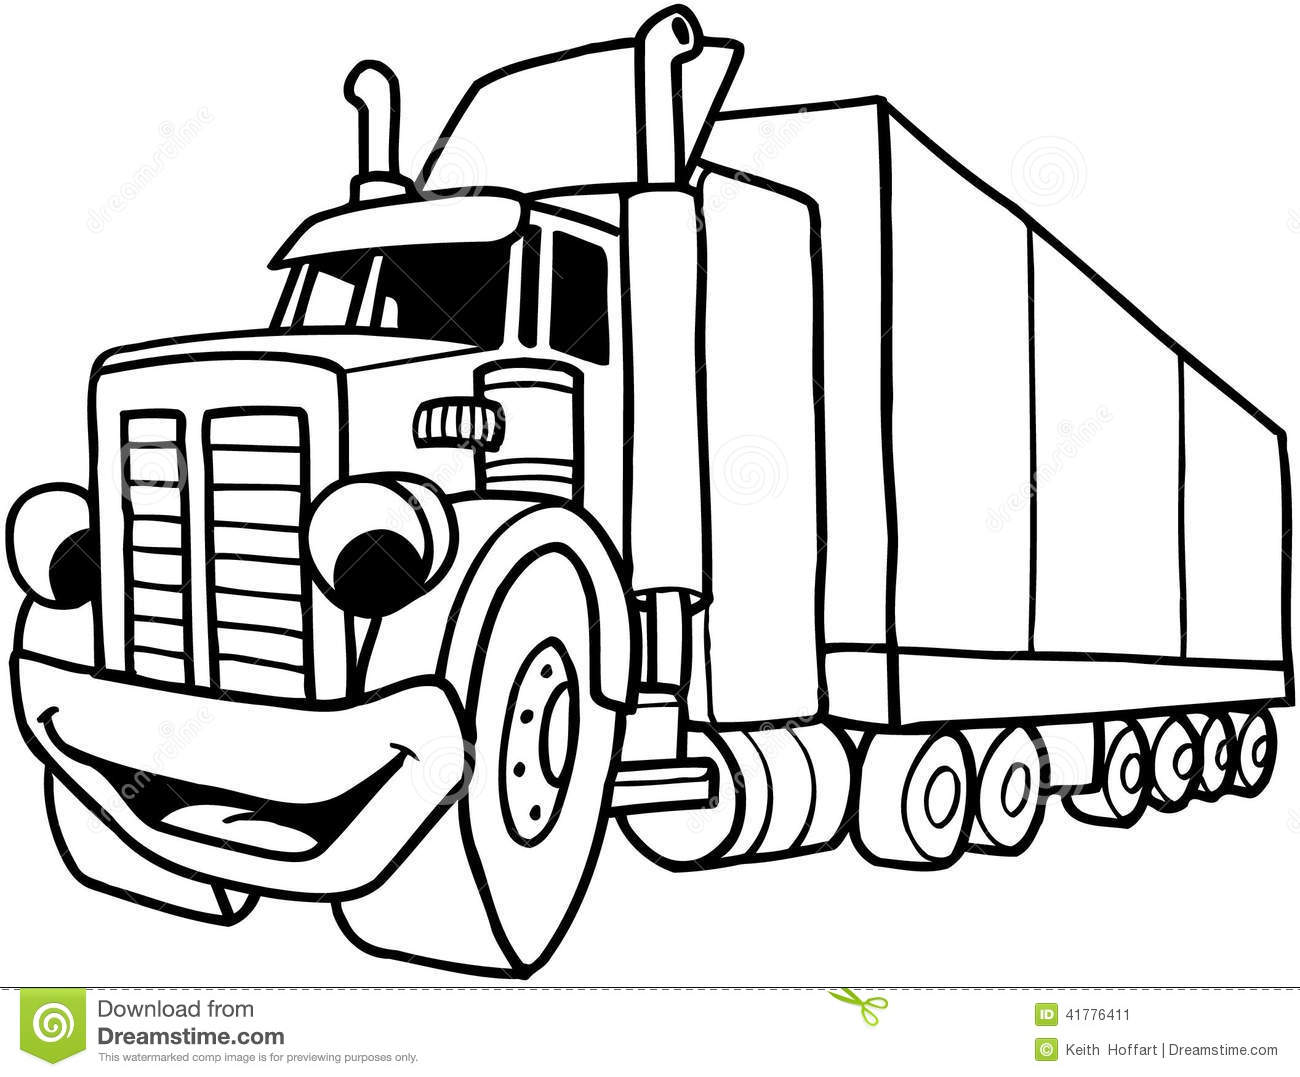 Big truck clipart black and white clip freeuse Black And White Truck | Free download best Black And White Truck on ... clip freeuse